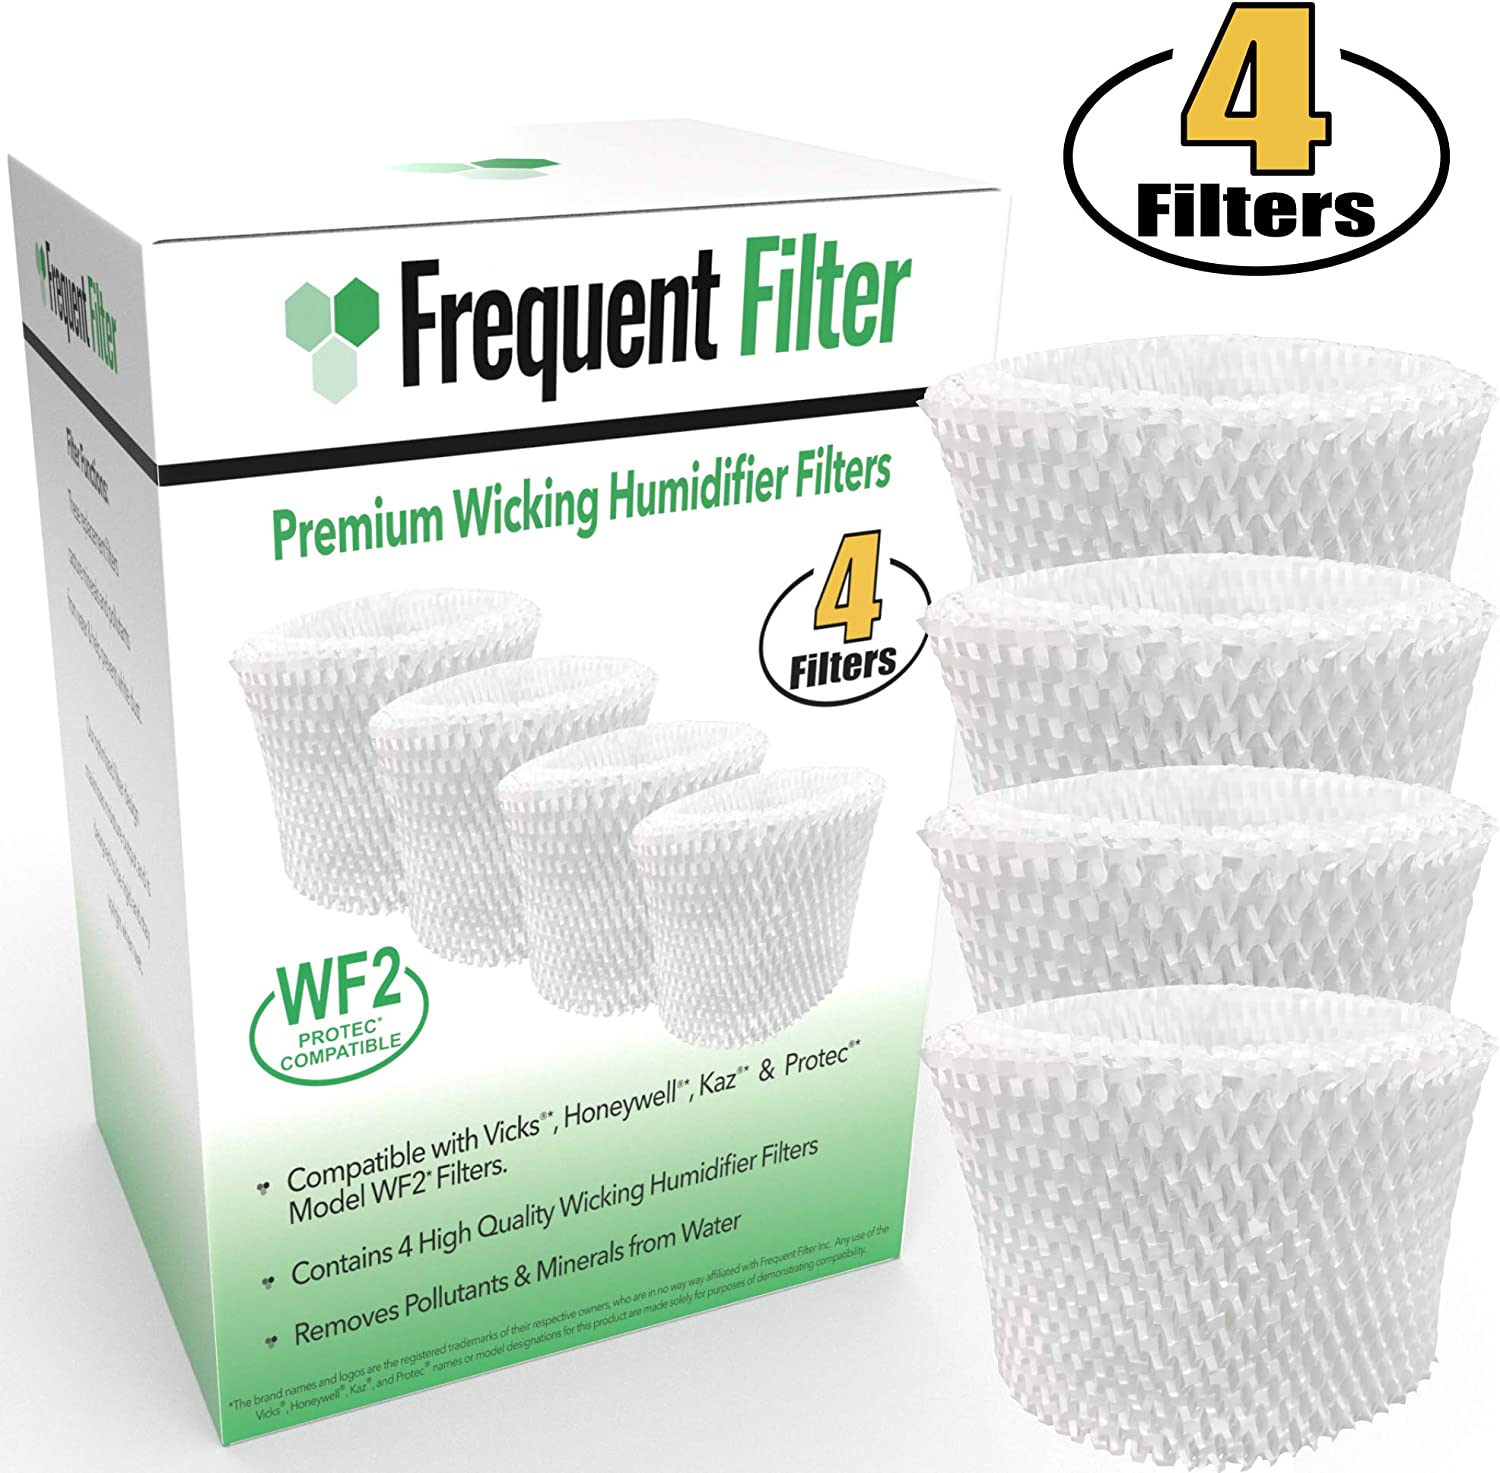 Frequent Filter Vicks & Kaz Compatible Protec WF2 Humidifier Filter (Pack of 2 Filters)